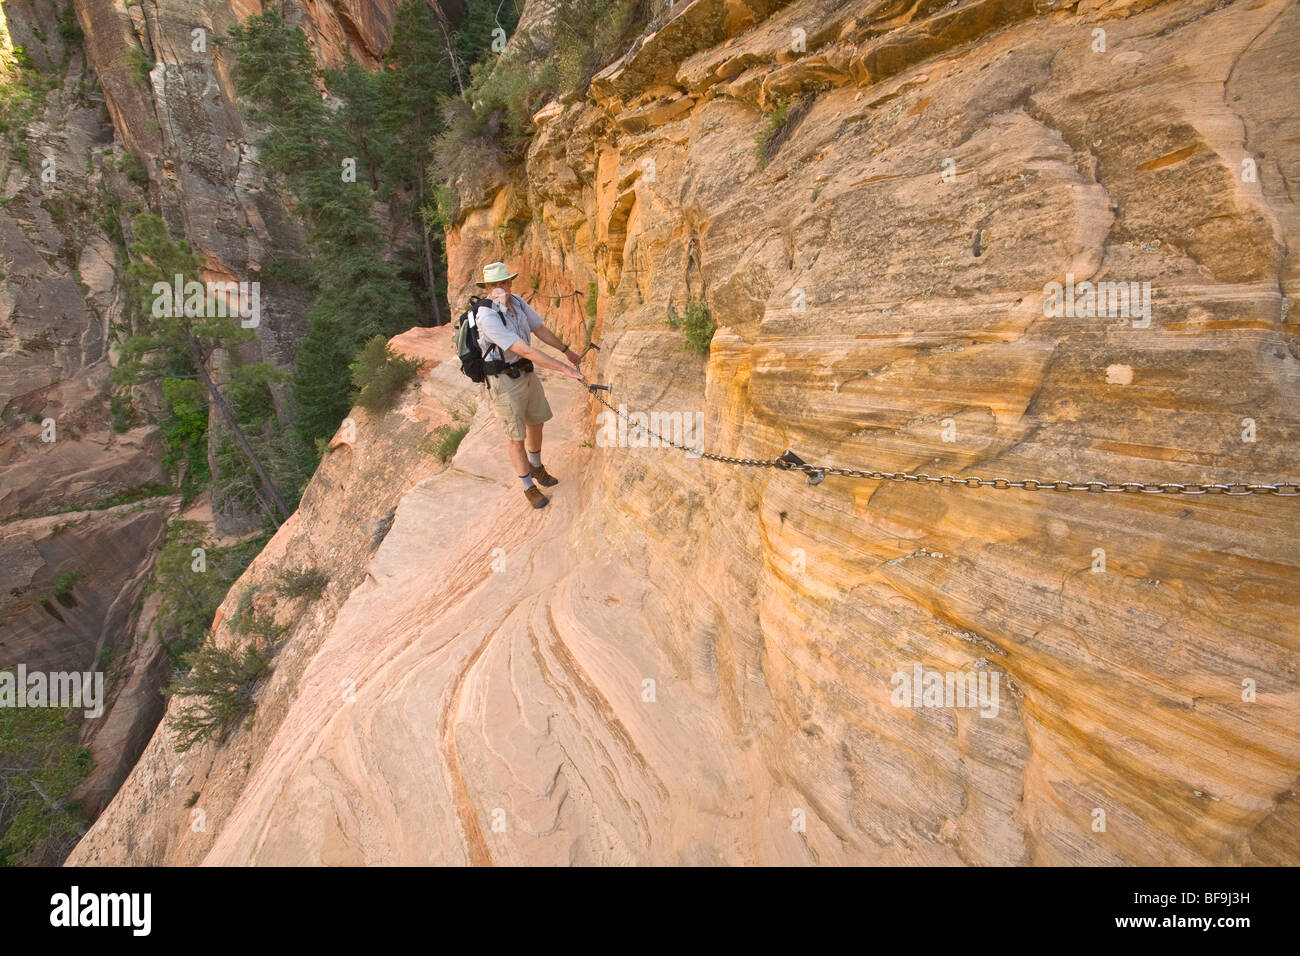 Hiker using chains for support along sheer cliff on Hidden Canyon Trail above Zion Canyon at Zion National Park, - Stock Image